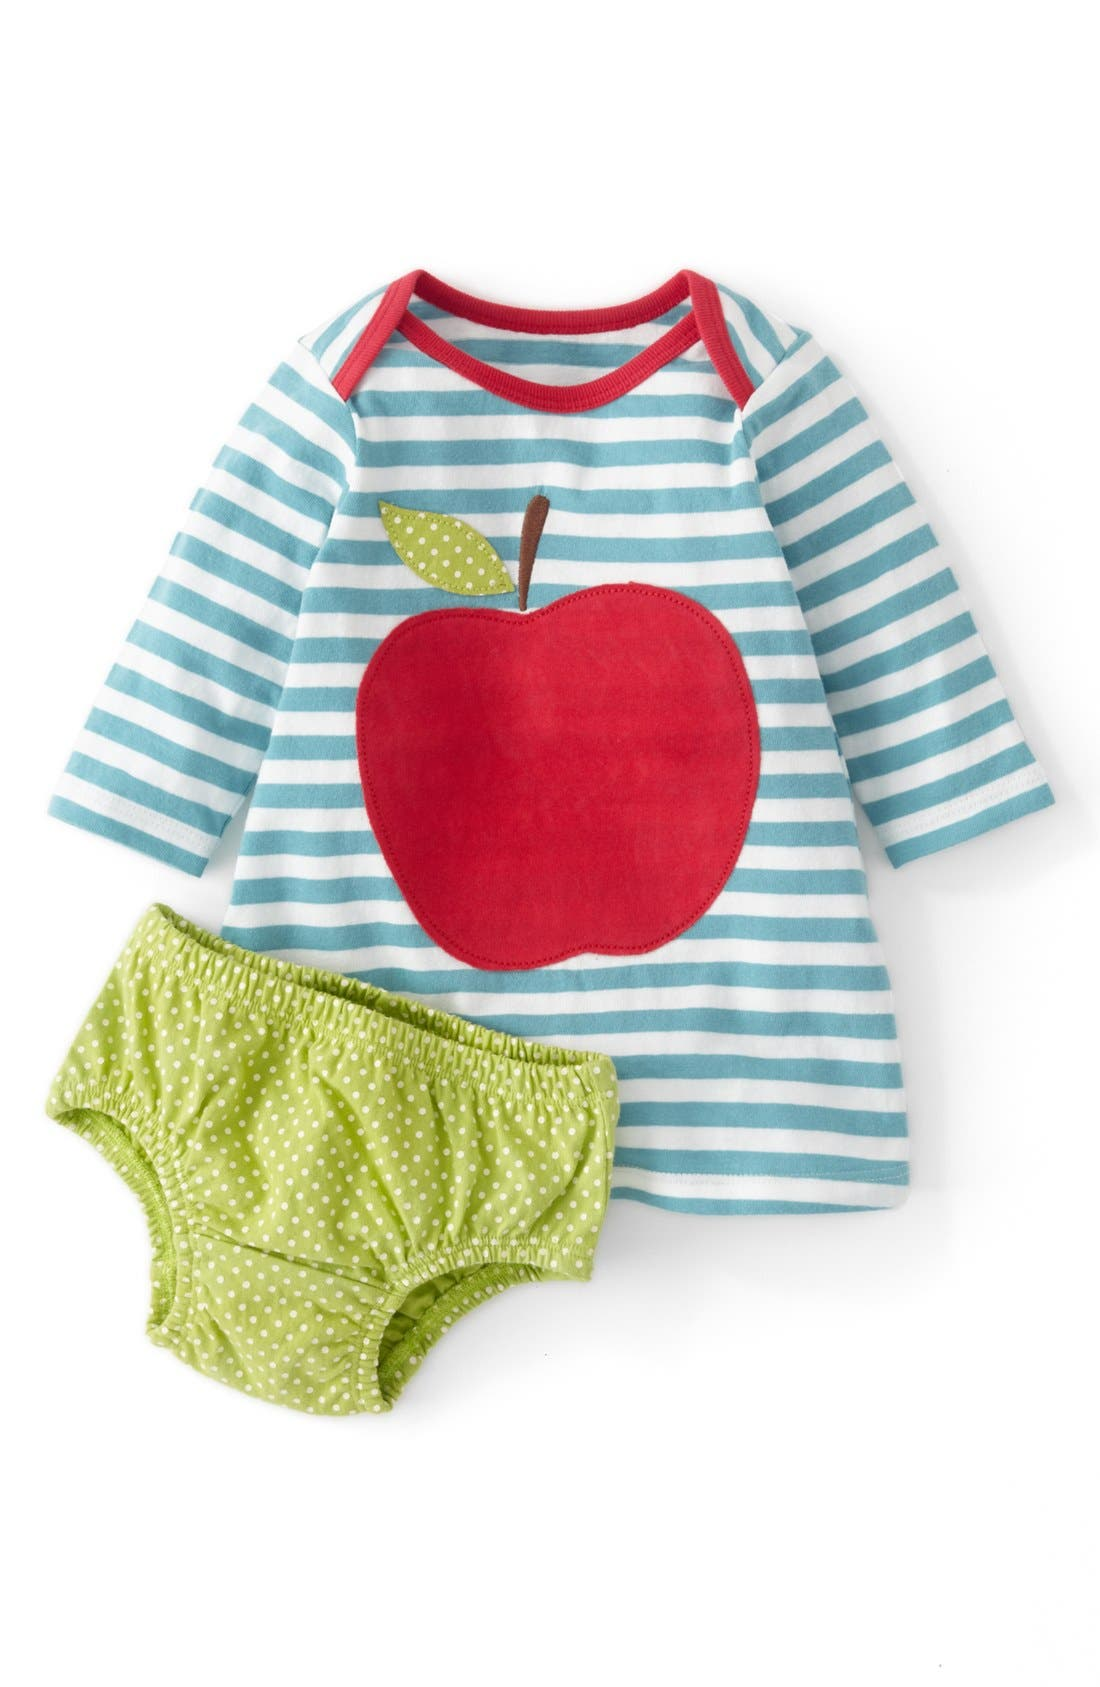 Alternate Image 1 Selected - Mini Boden Appliqué Stripe Jersey Dress (Baby Girls)